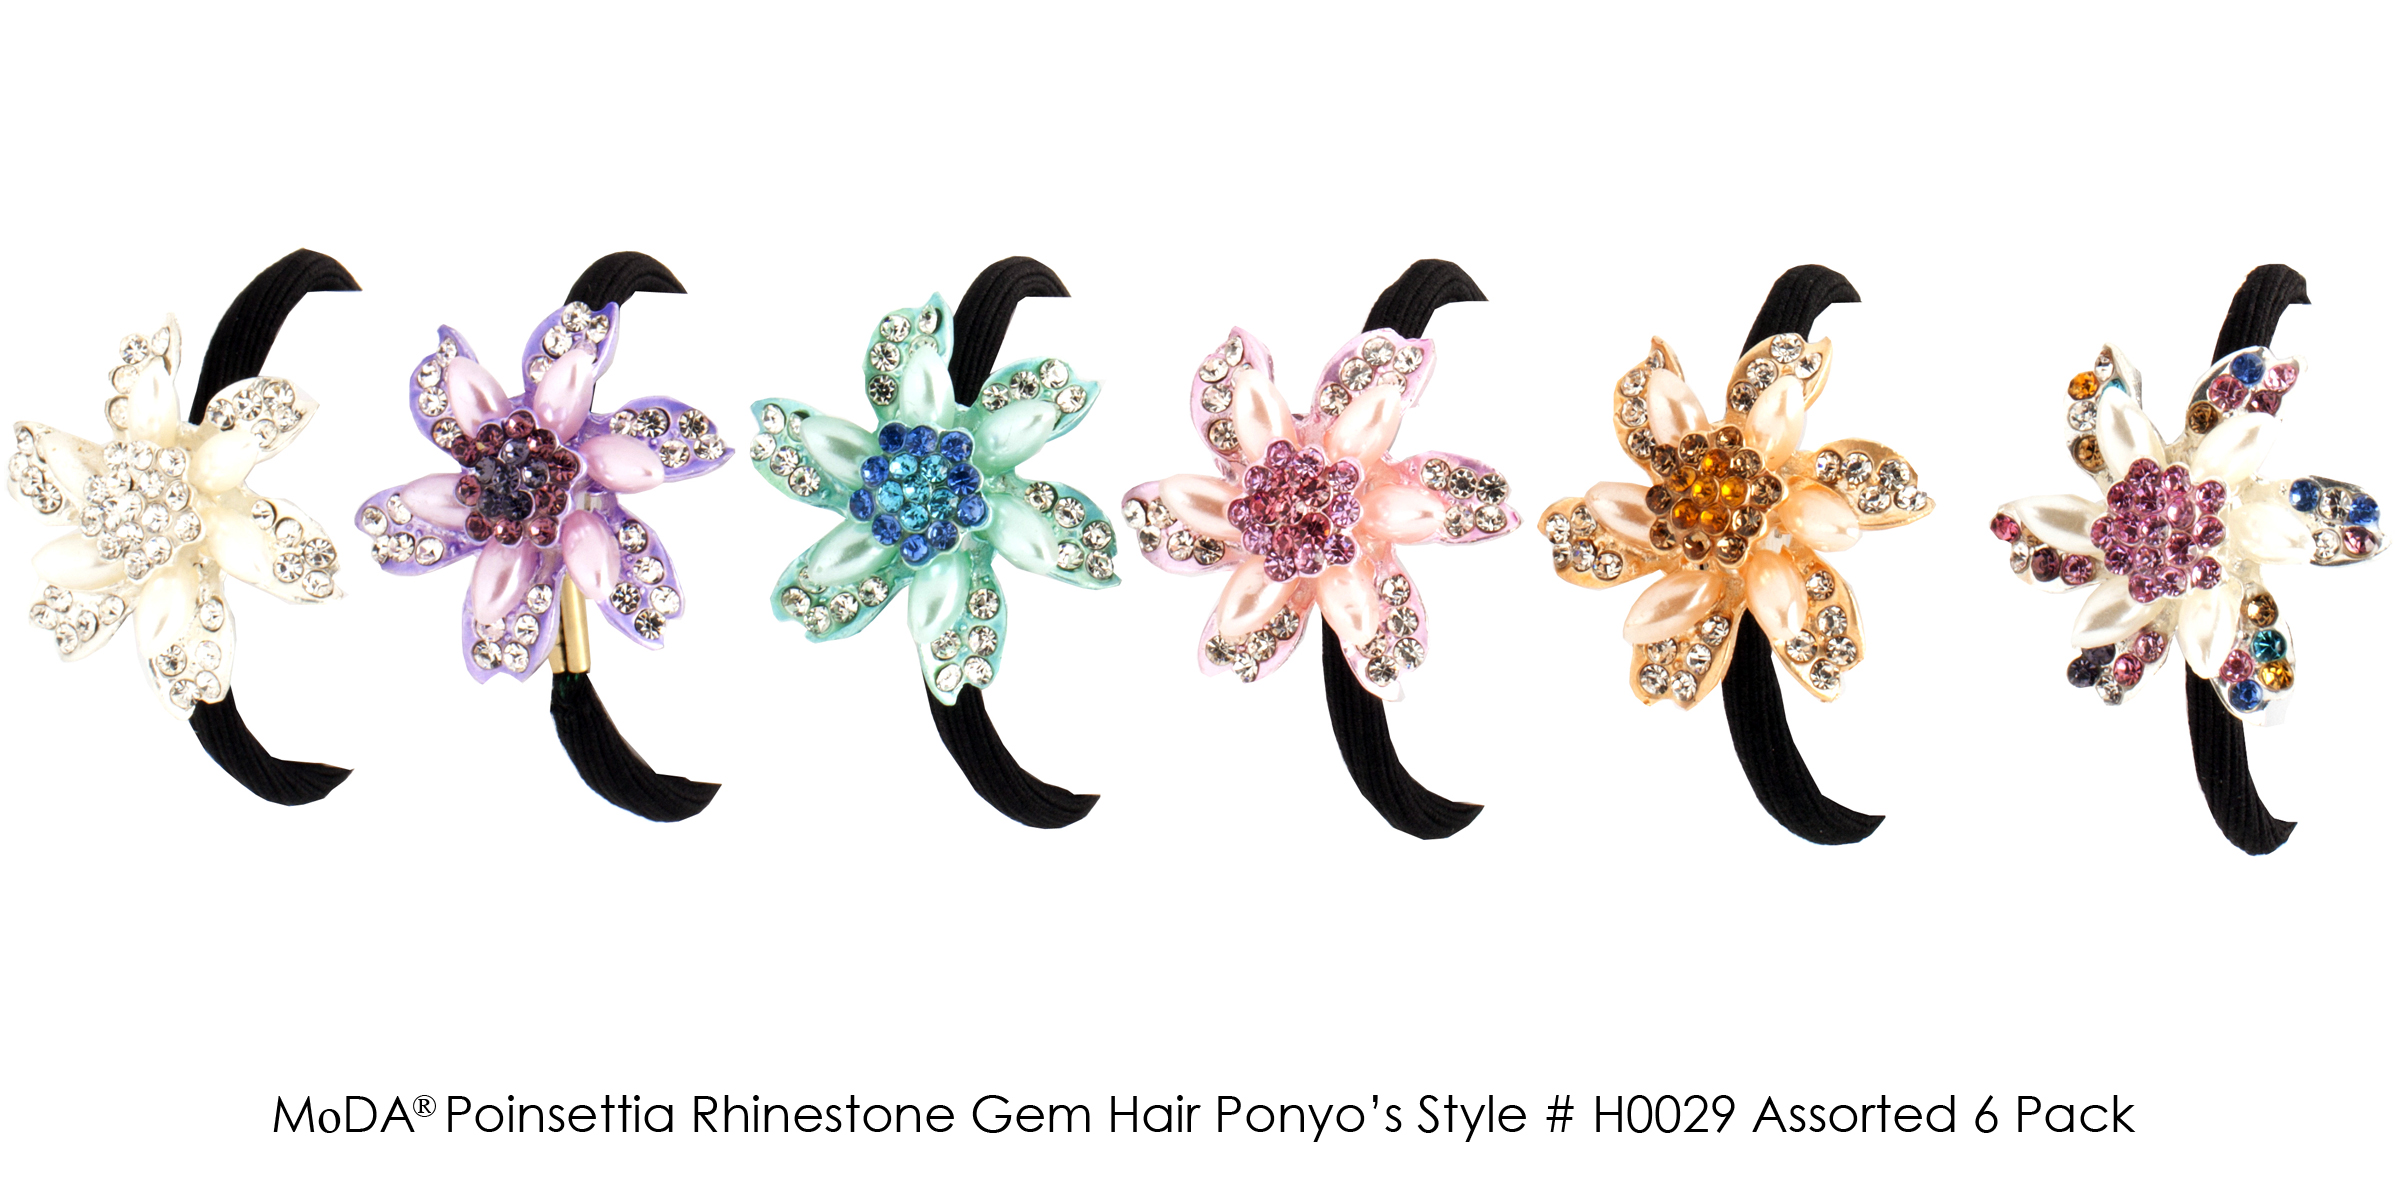 MoDA Hair Ponyo with Poinsettia Rhinestone Gem Set of 6 Assorted Colors